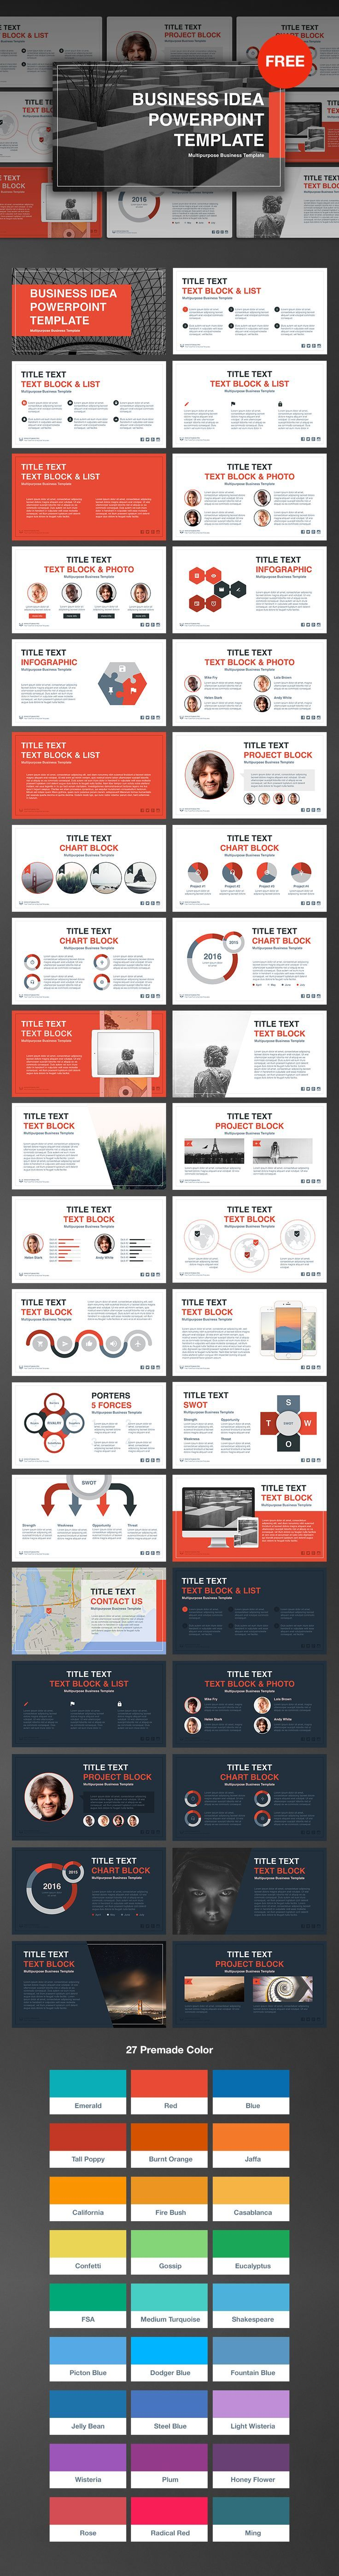 Les 25 meilleures ides de la catgorie planning ppt sur pinterest free download powerpoint template httpsite2maxobusiness idea free powerpoint template 31 slides pptx format 169 hd free support pronofoot35fo Gallery